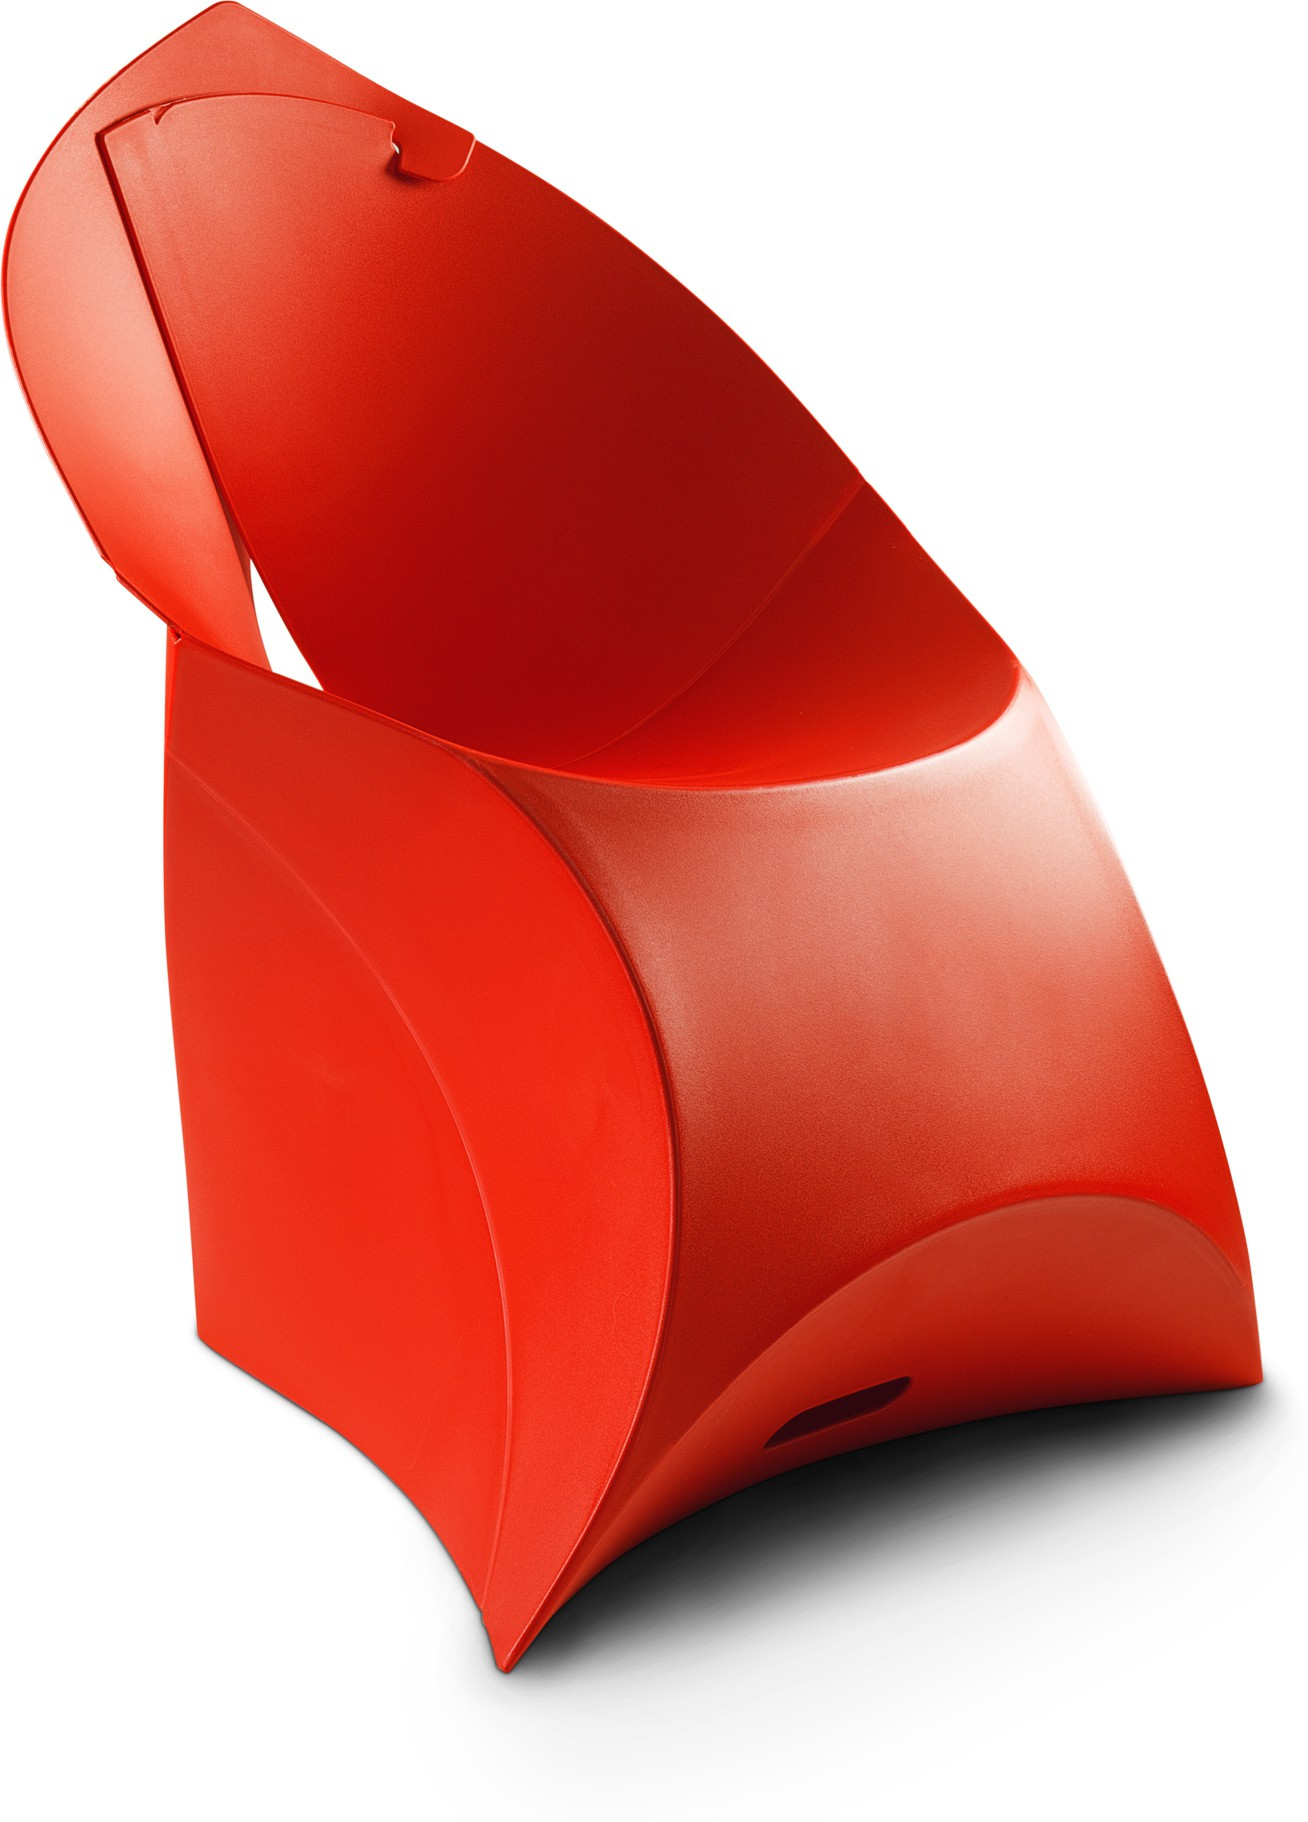 View Flux Plastic Living Room Chair(Finish Color - Classic Red) Furniture (Flux)